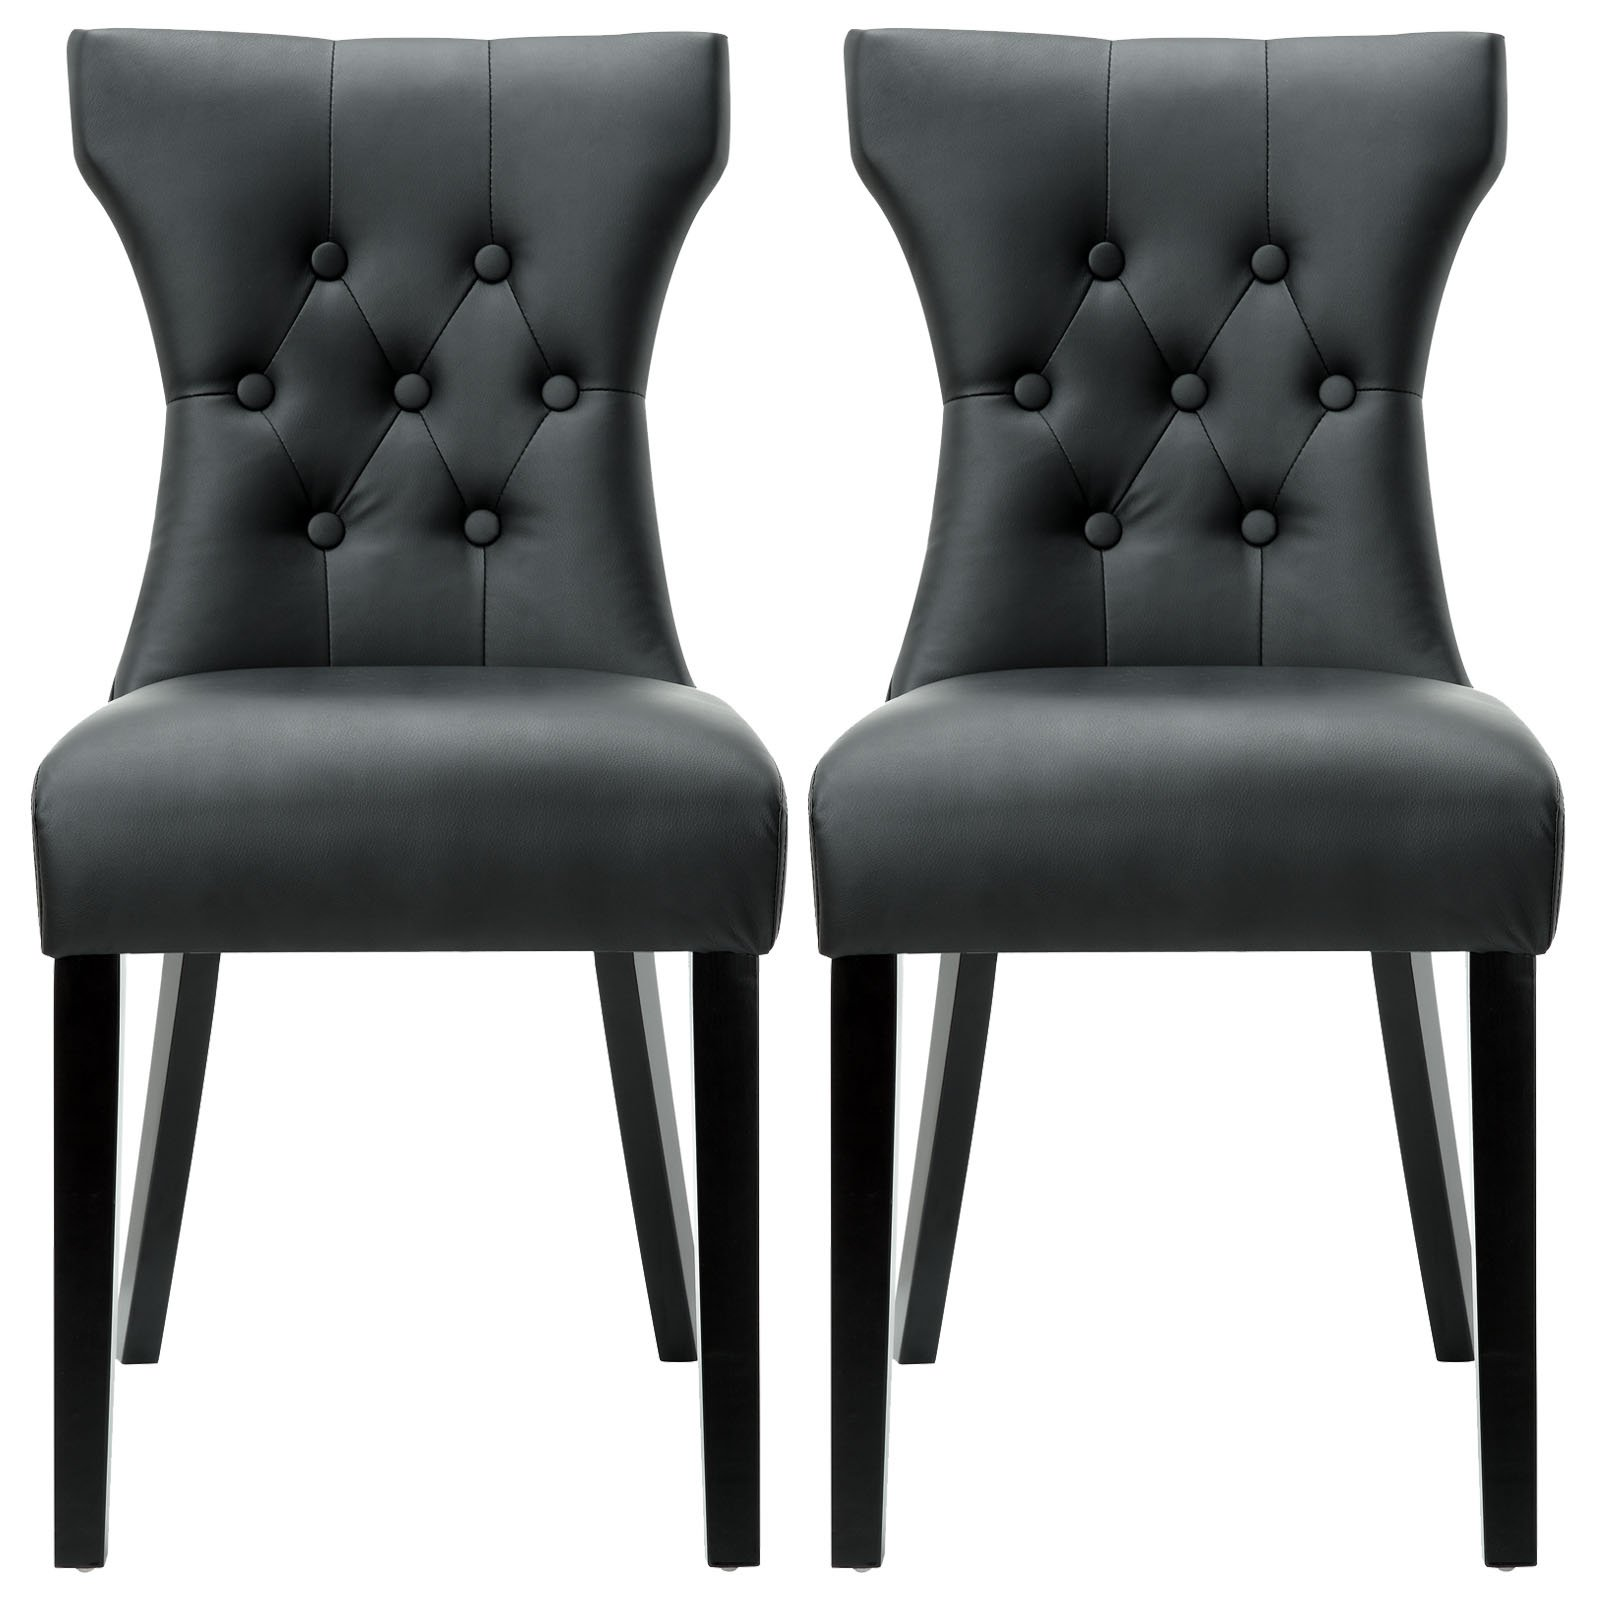 Modway Silhouette Modern Tufted Faux Leather Upholstered Parsons Two Kitchen and Dining Room Chairs in Black by Modway